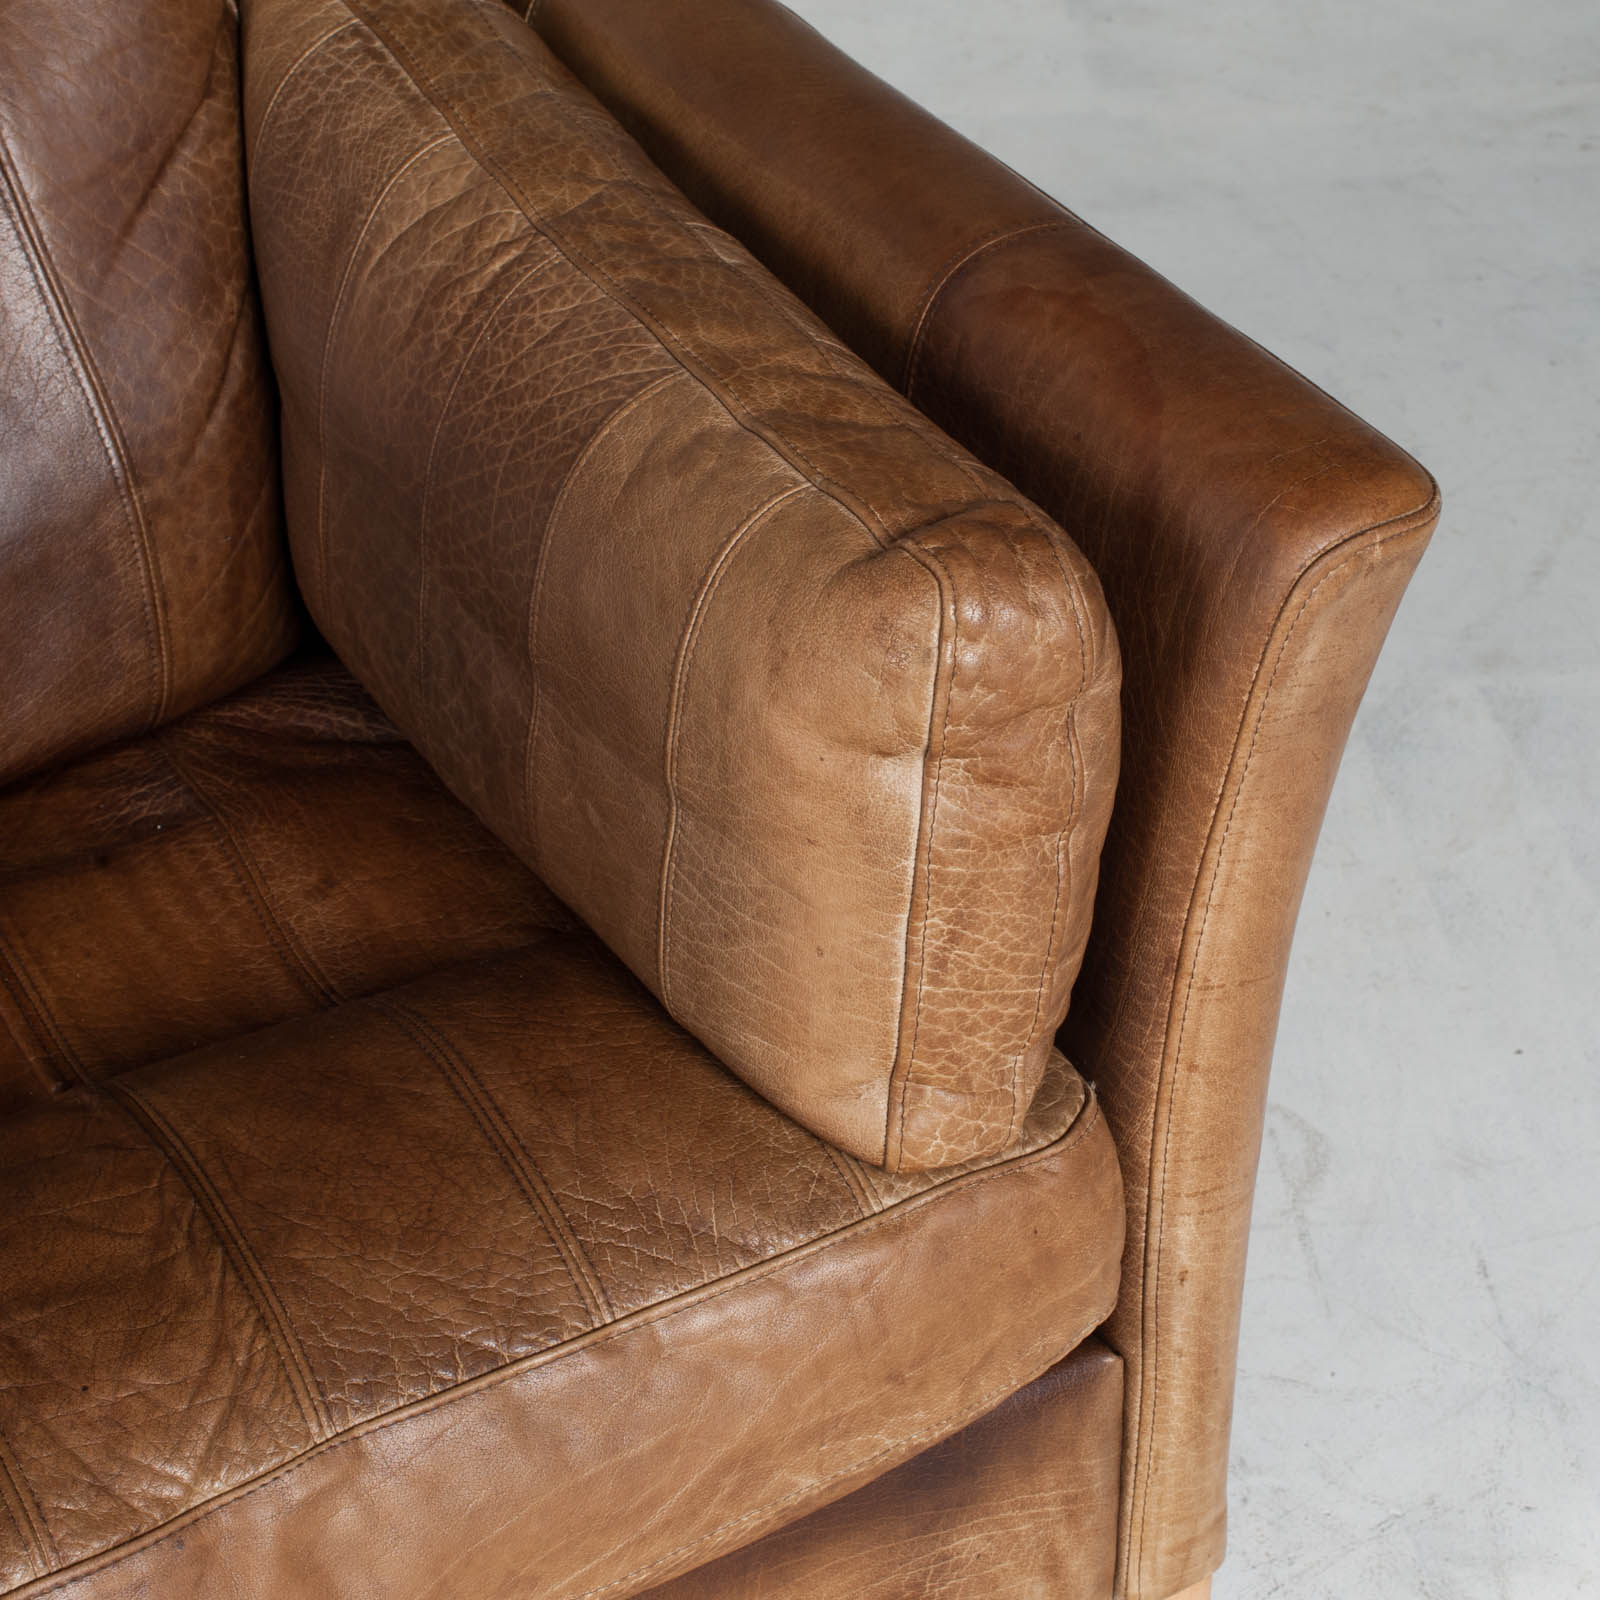 2.5 Seat Sofa In Tan Panelled Leather 1960s Denmark10